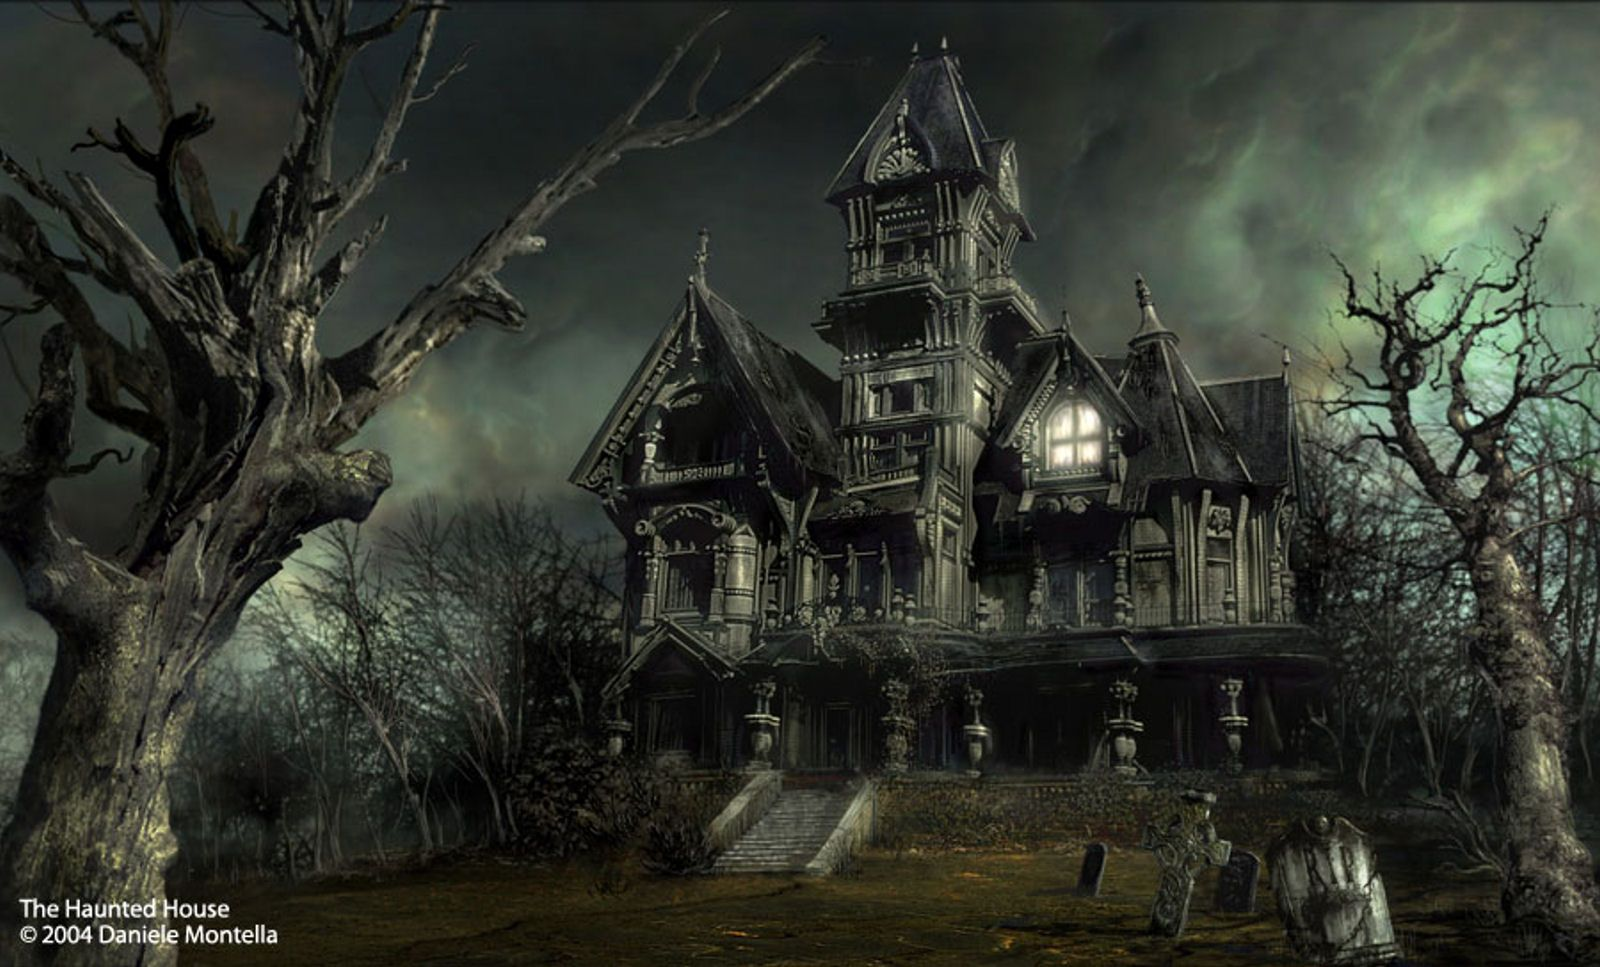 1000+ images about Haunted Houses!!!! on Pinterest